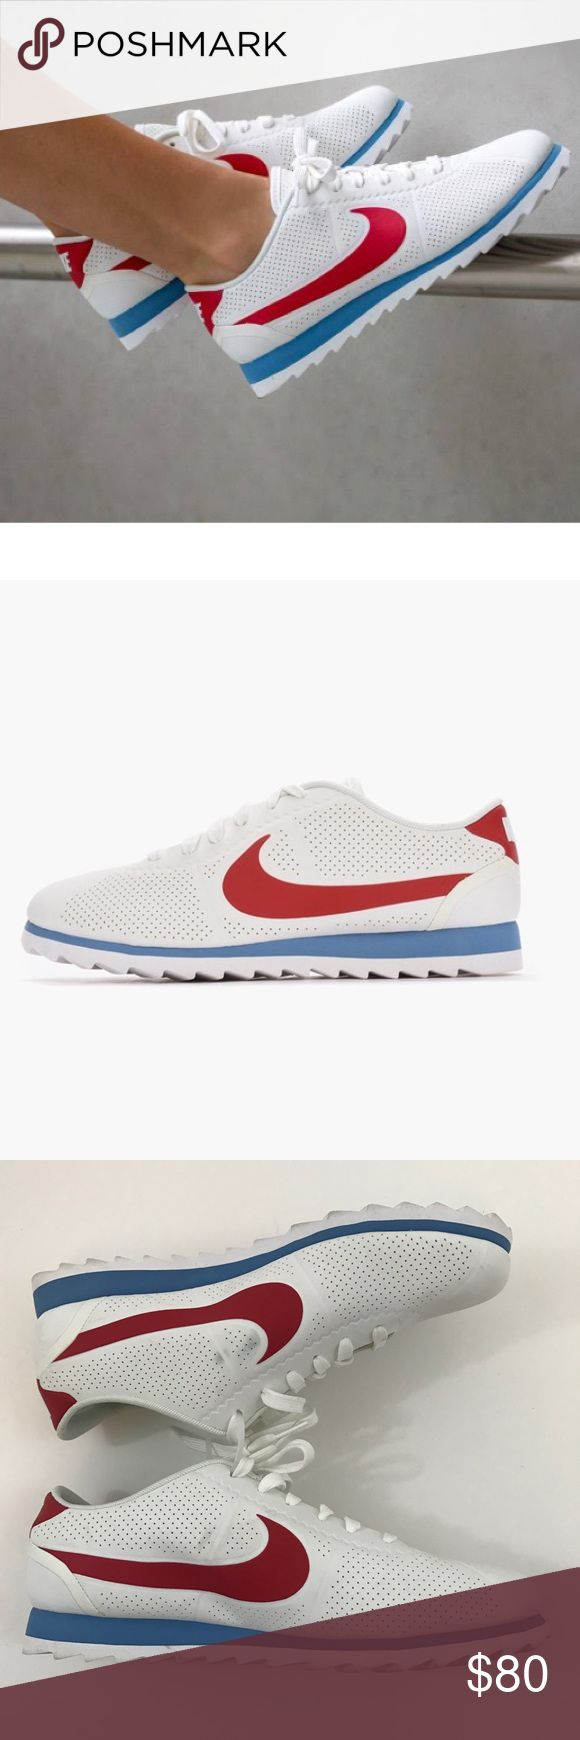 Nike W Cortez Ultra Moire Summit White US 10 Nike W Cortez Ultra Moire 844893-106 Summit White/Varsity US 10  Women's Shoes Nike Shoes Sneakers